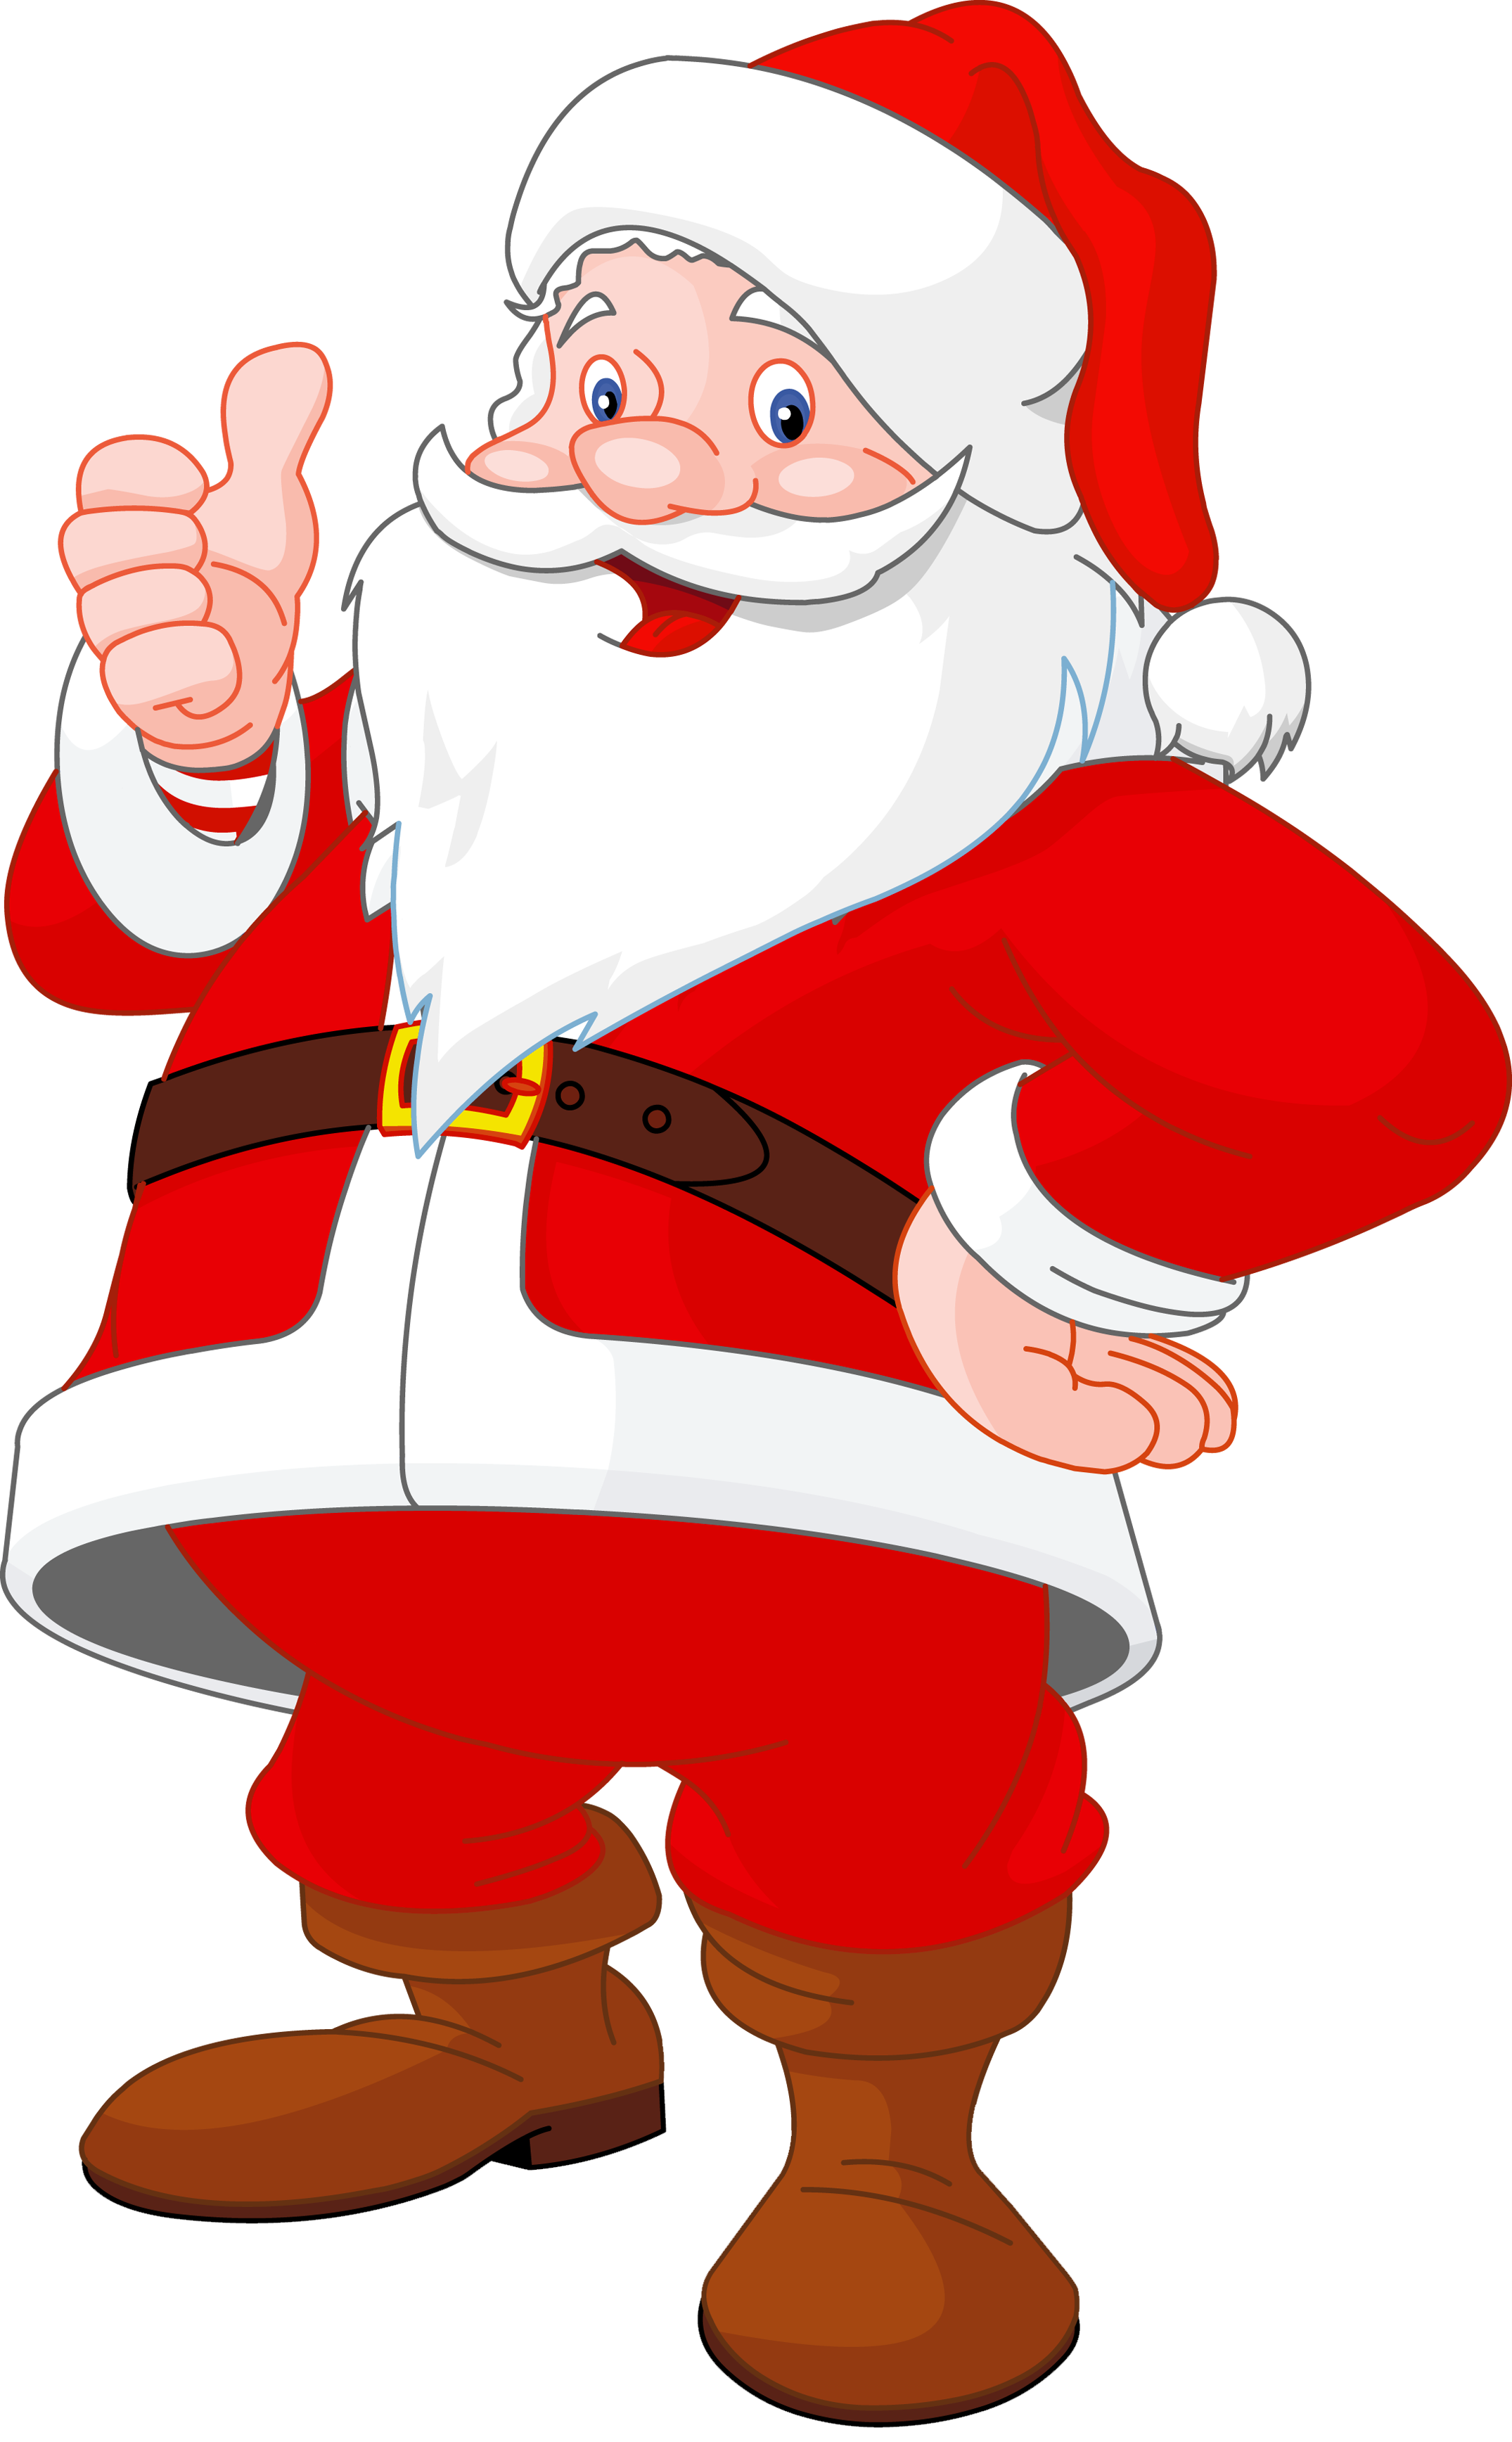 Santa clipart transparent background #15